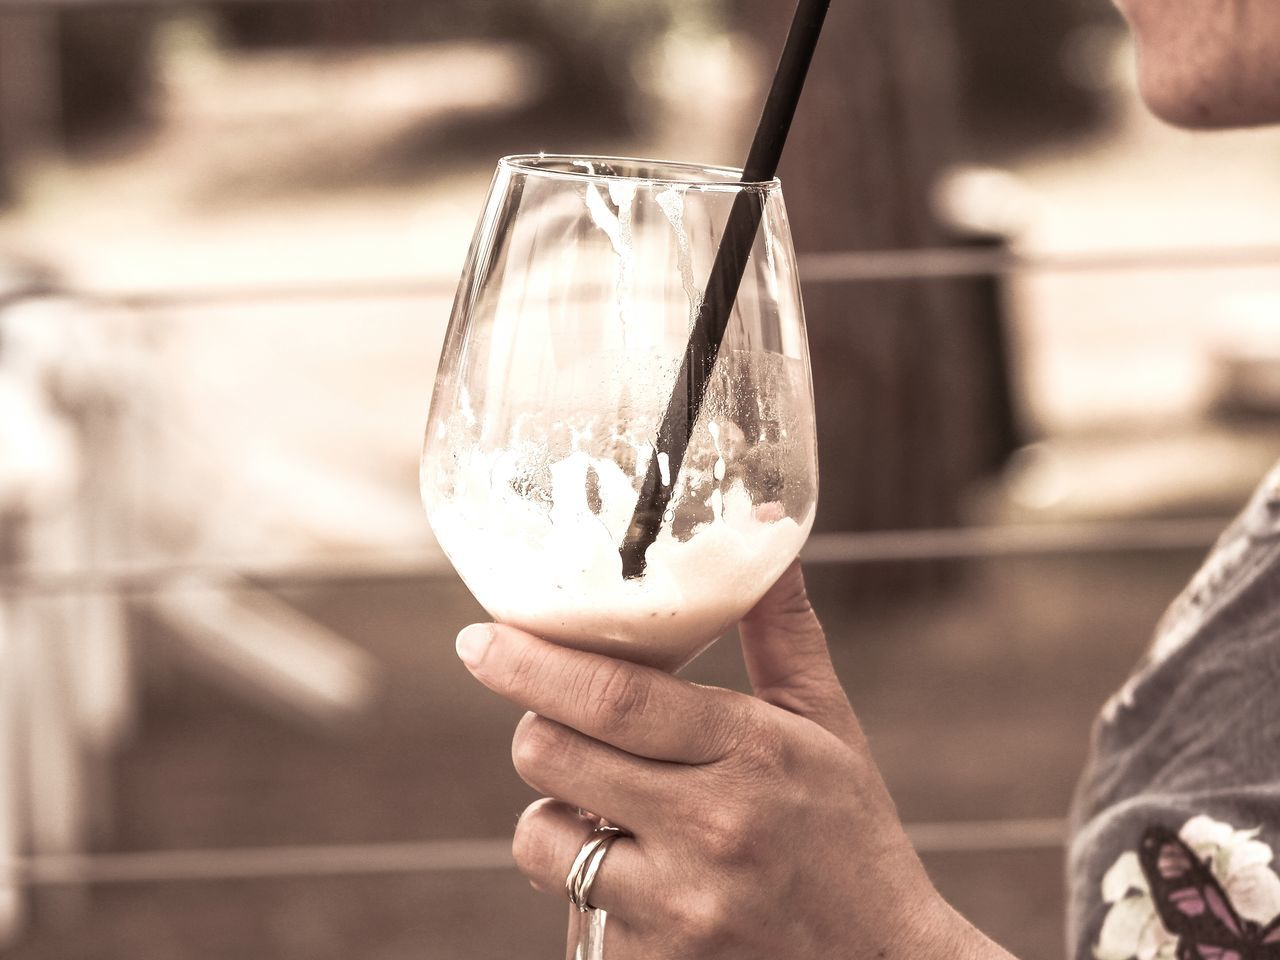 Holding Focus On Foreground Human Body Part Human Hand Close-up One Person Hanging Adults Only Outdoors Real People People Adult Day Drinking Drinking Glass